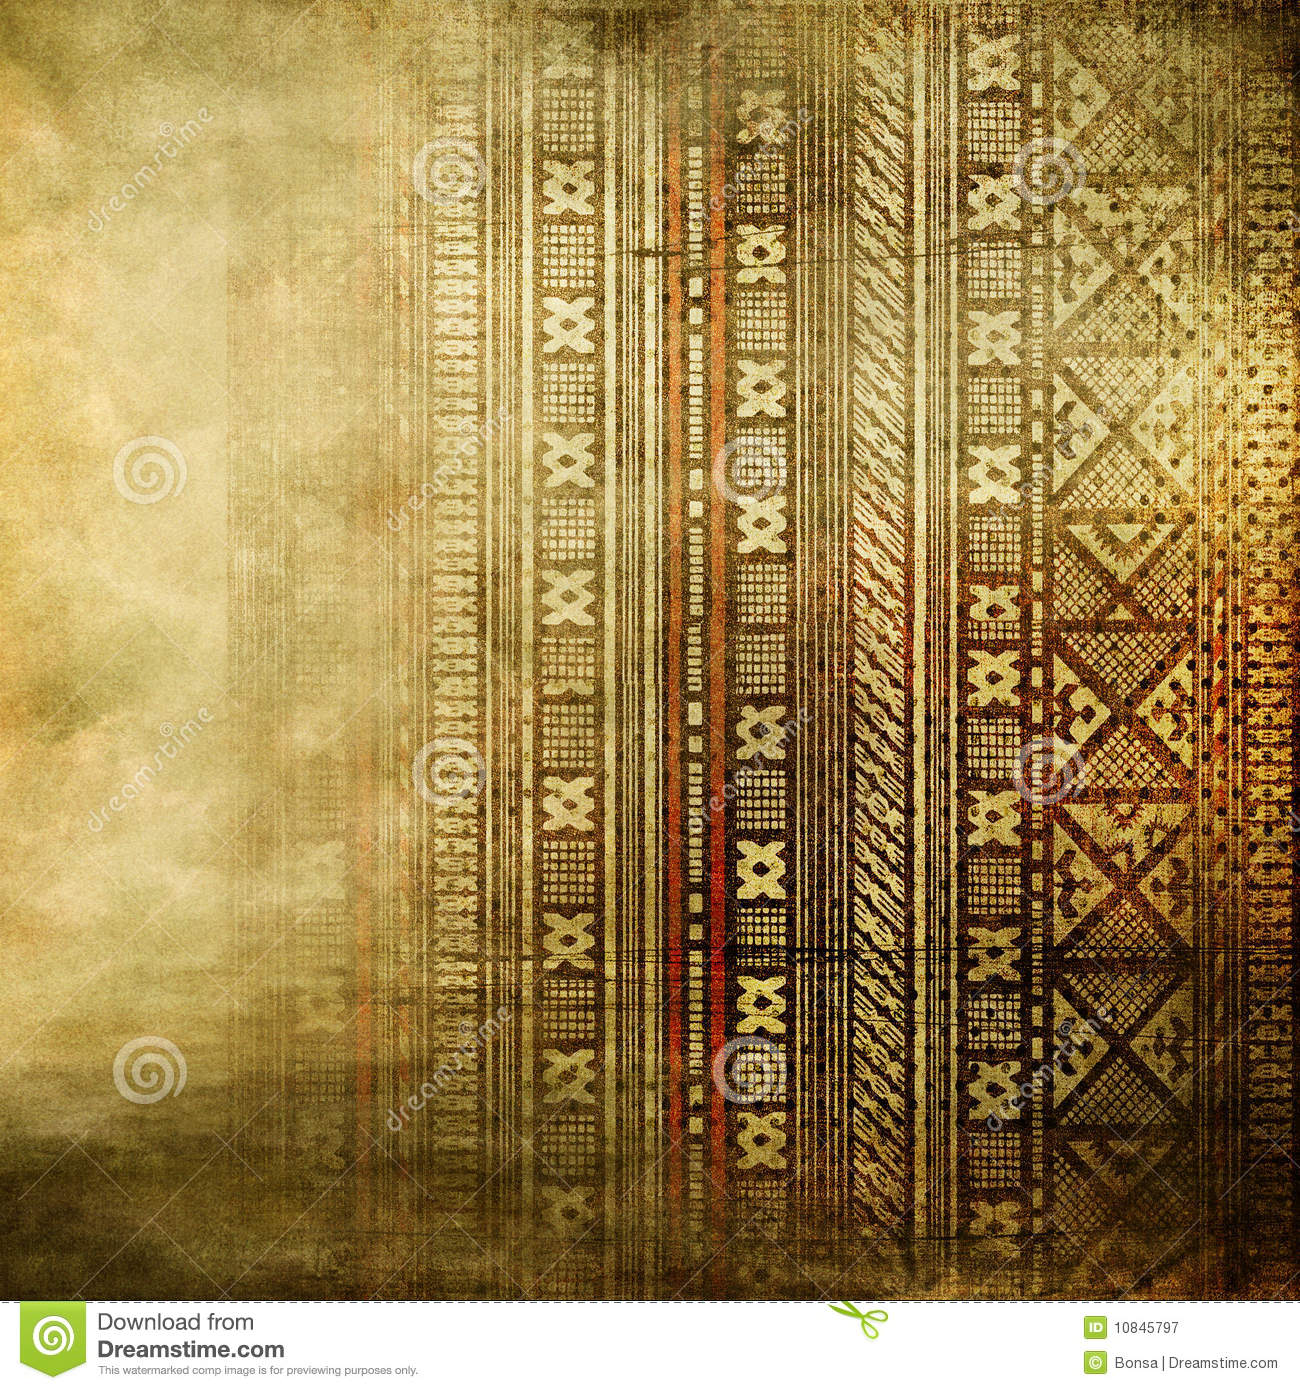 African Texture In Golden Colors Royalty Free Stock Photography ...